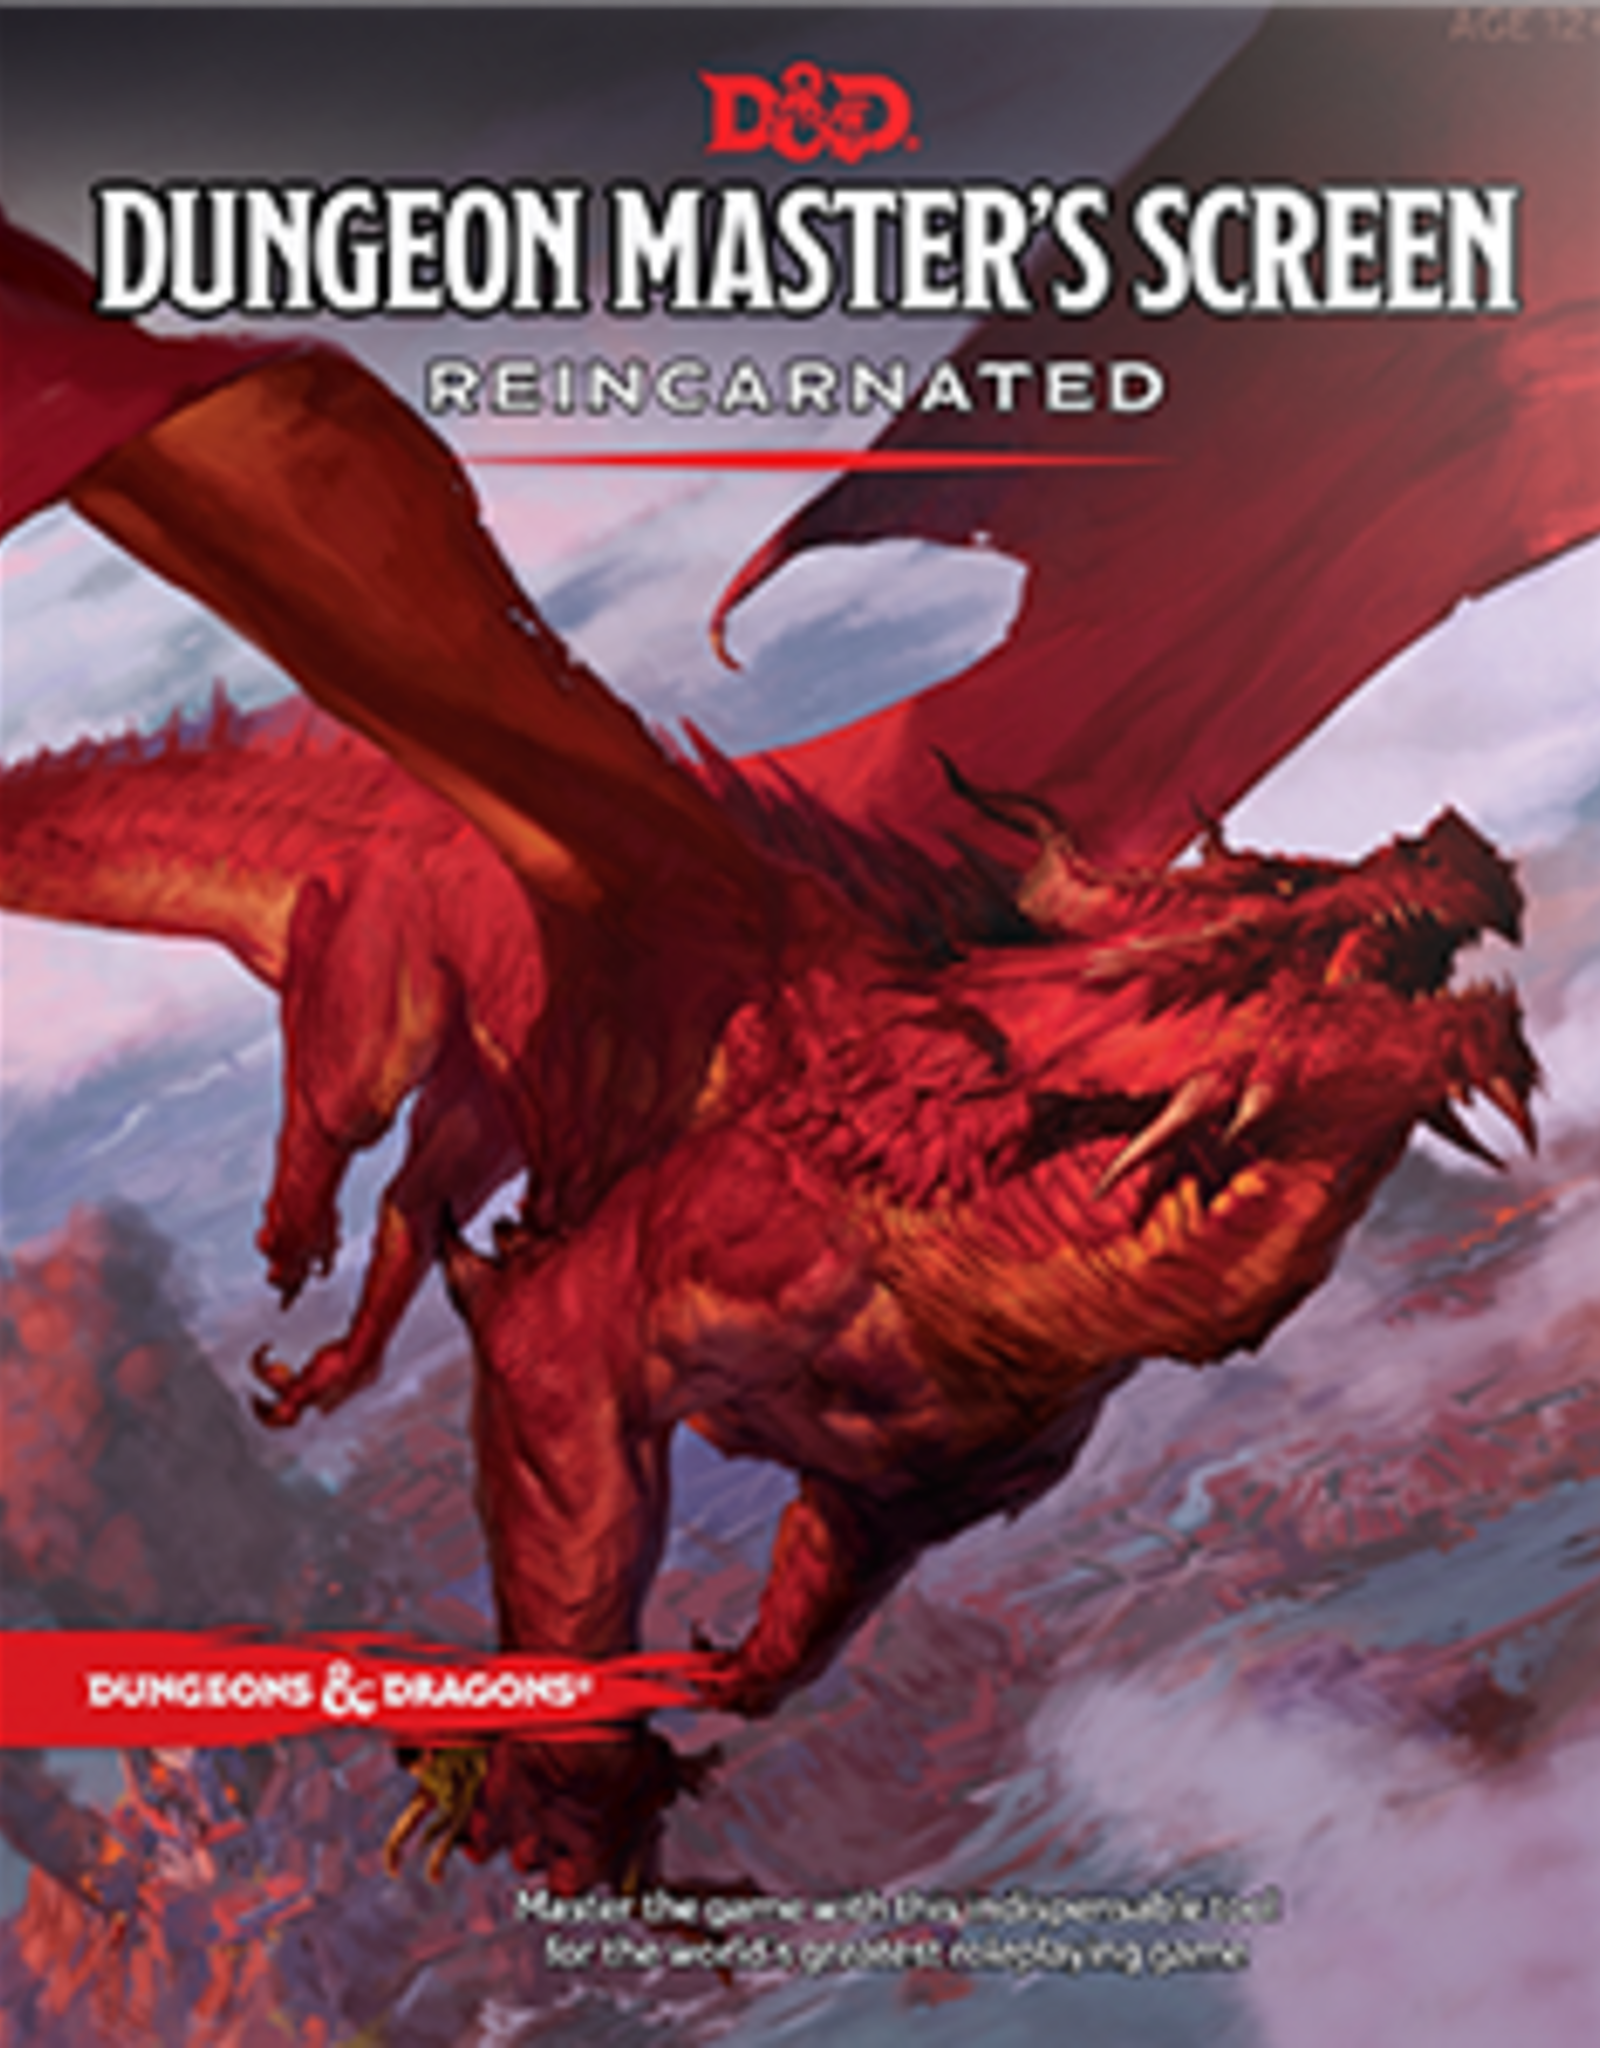 Wizards of the Coast Dungeons & Dragons Dungeon Master's Screen Reincarnated